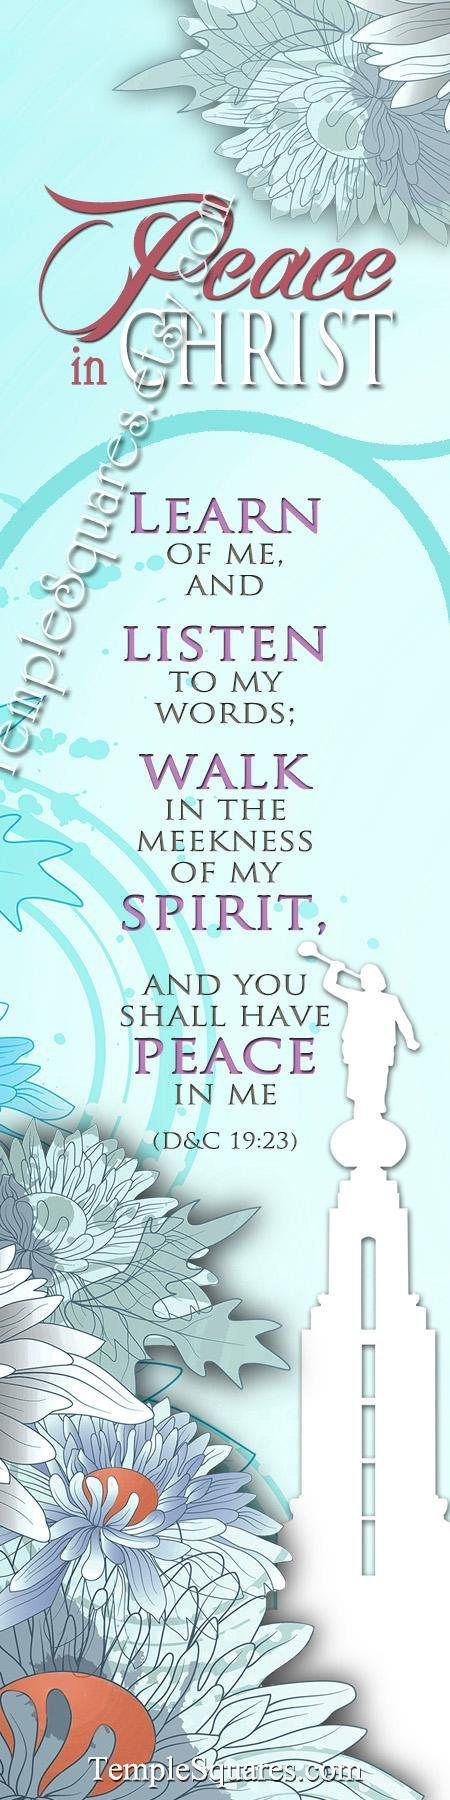 2018 Mutual Theme LDS YW Peace in Christ Peace in me D&C 19:23 Printable Posters Handouts Bookmarks Instant Download Digital Collage chrysanthemum Redlands California Temple, watch for other temples coming soon or send me a note to request a particular temple in this silhouette design.